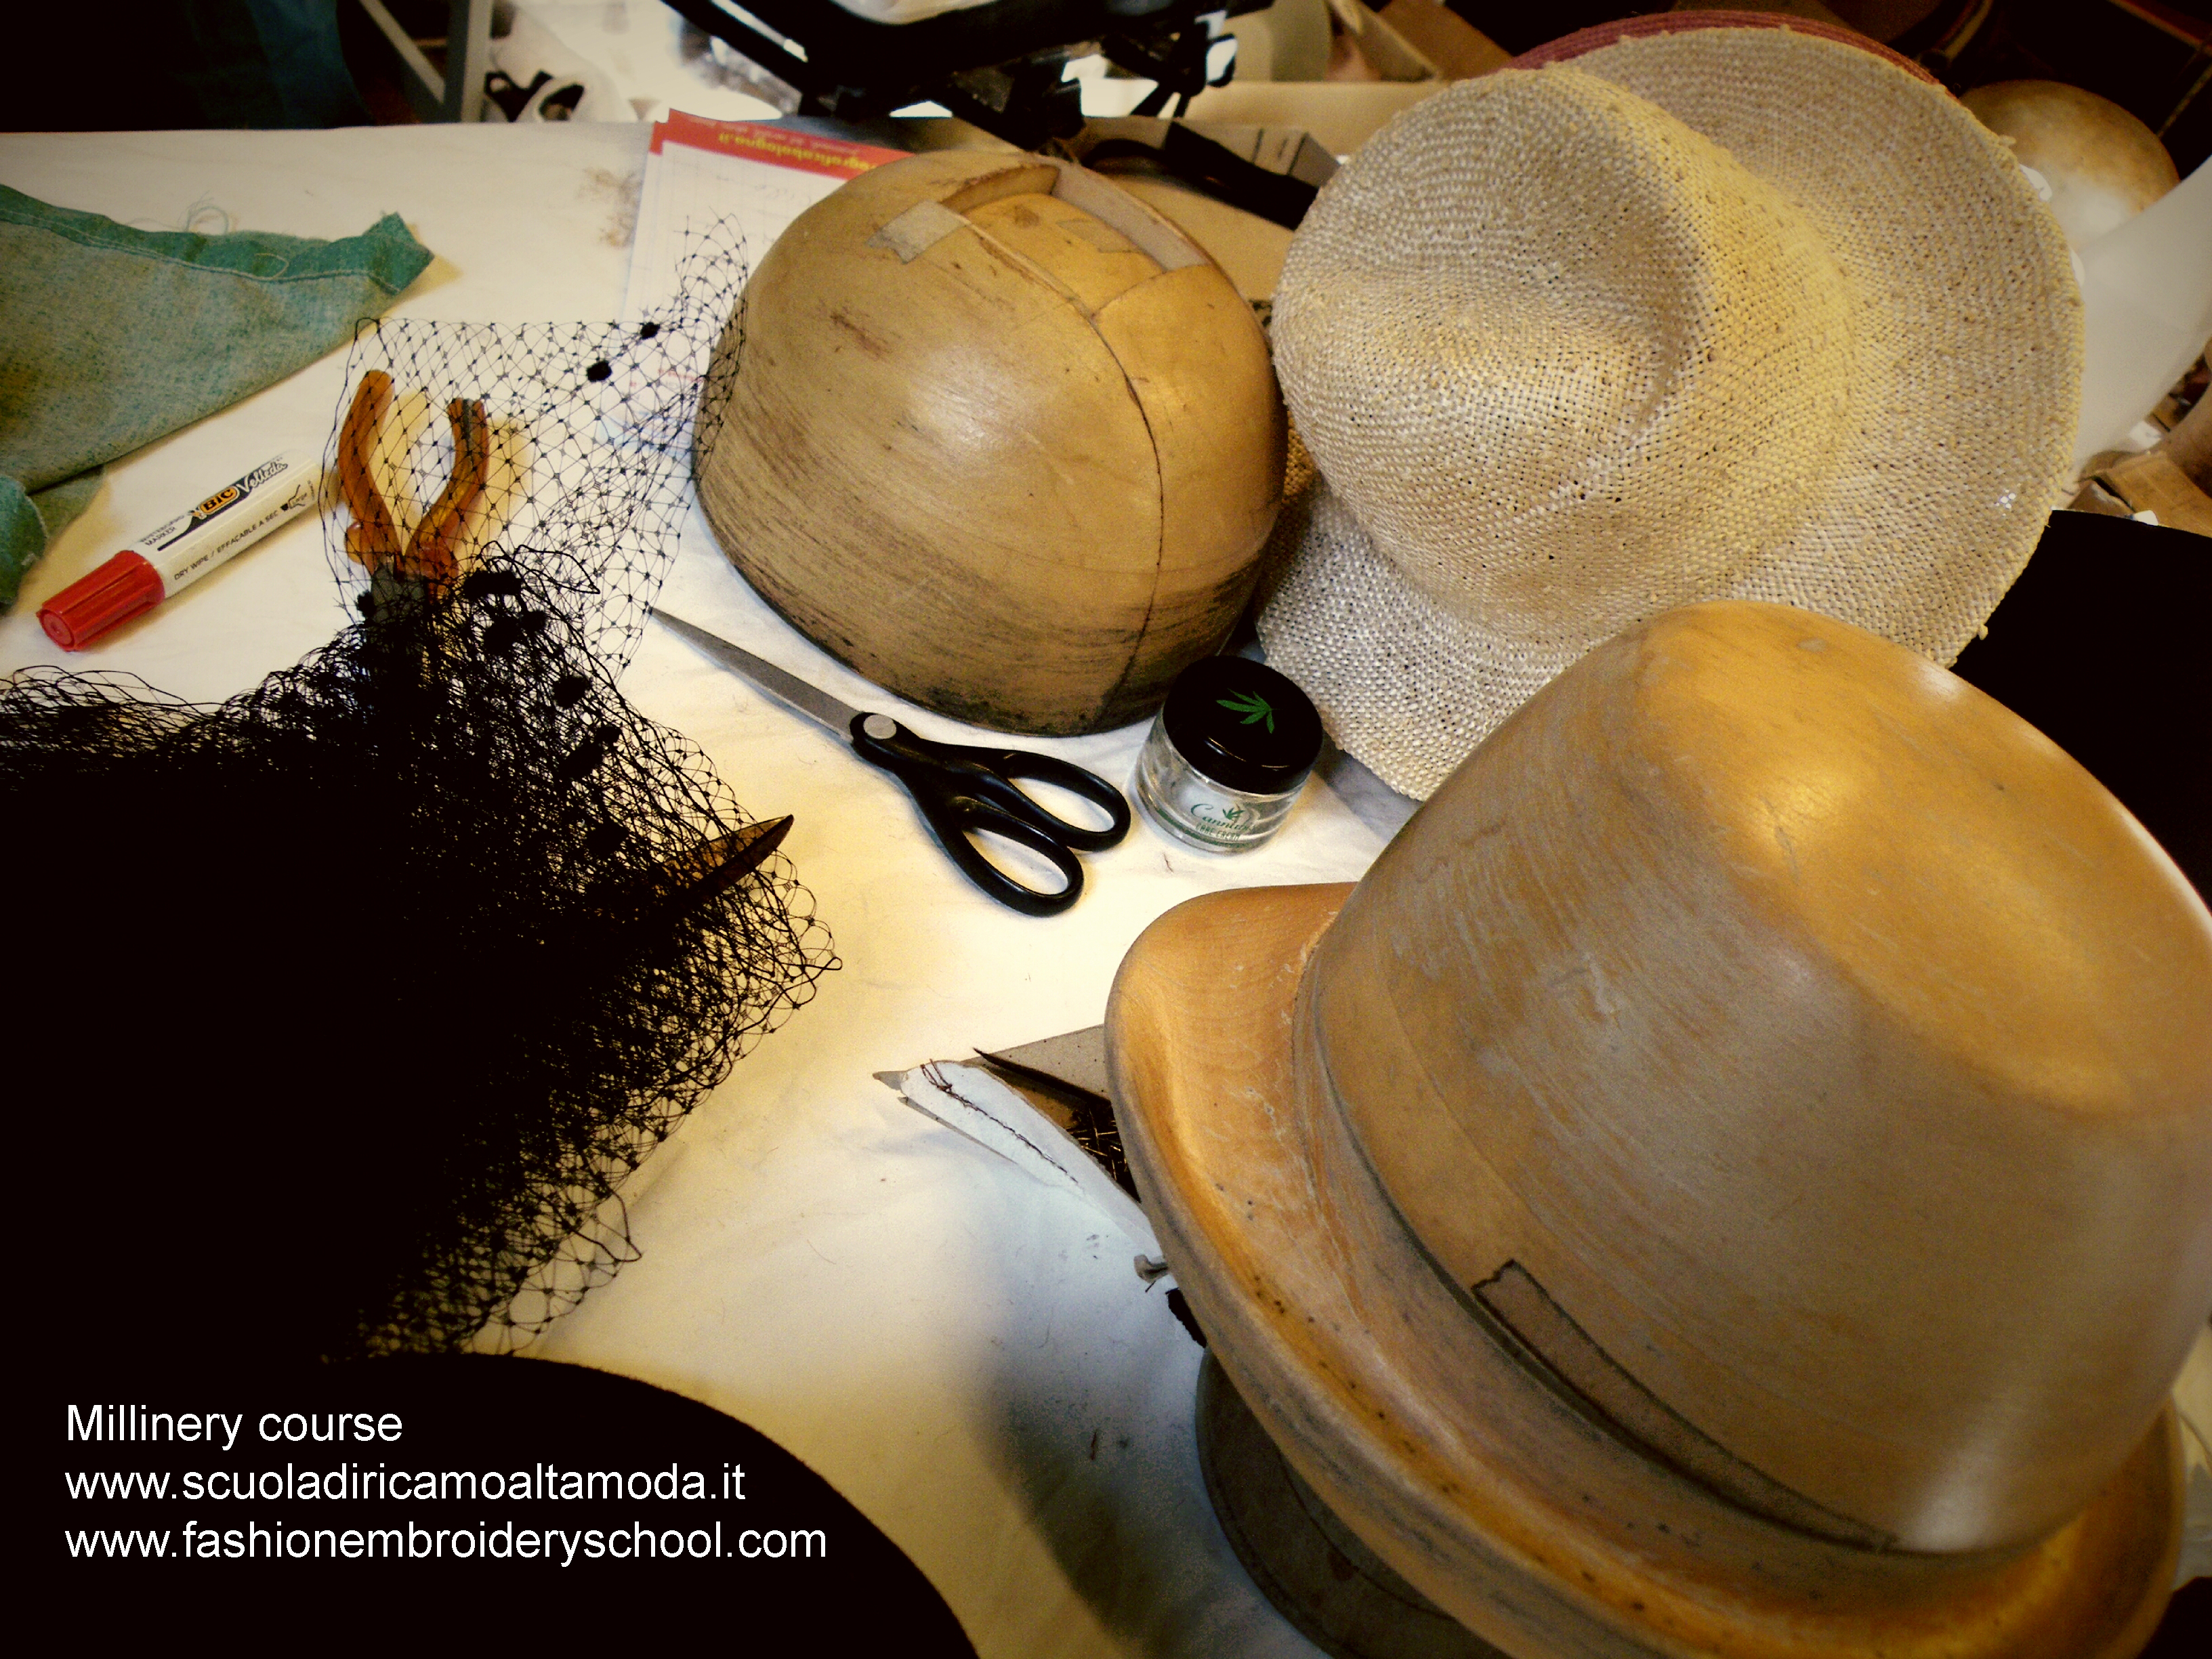 Millinery course